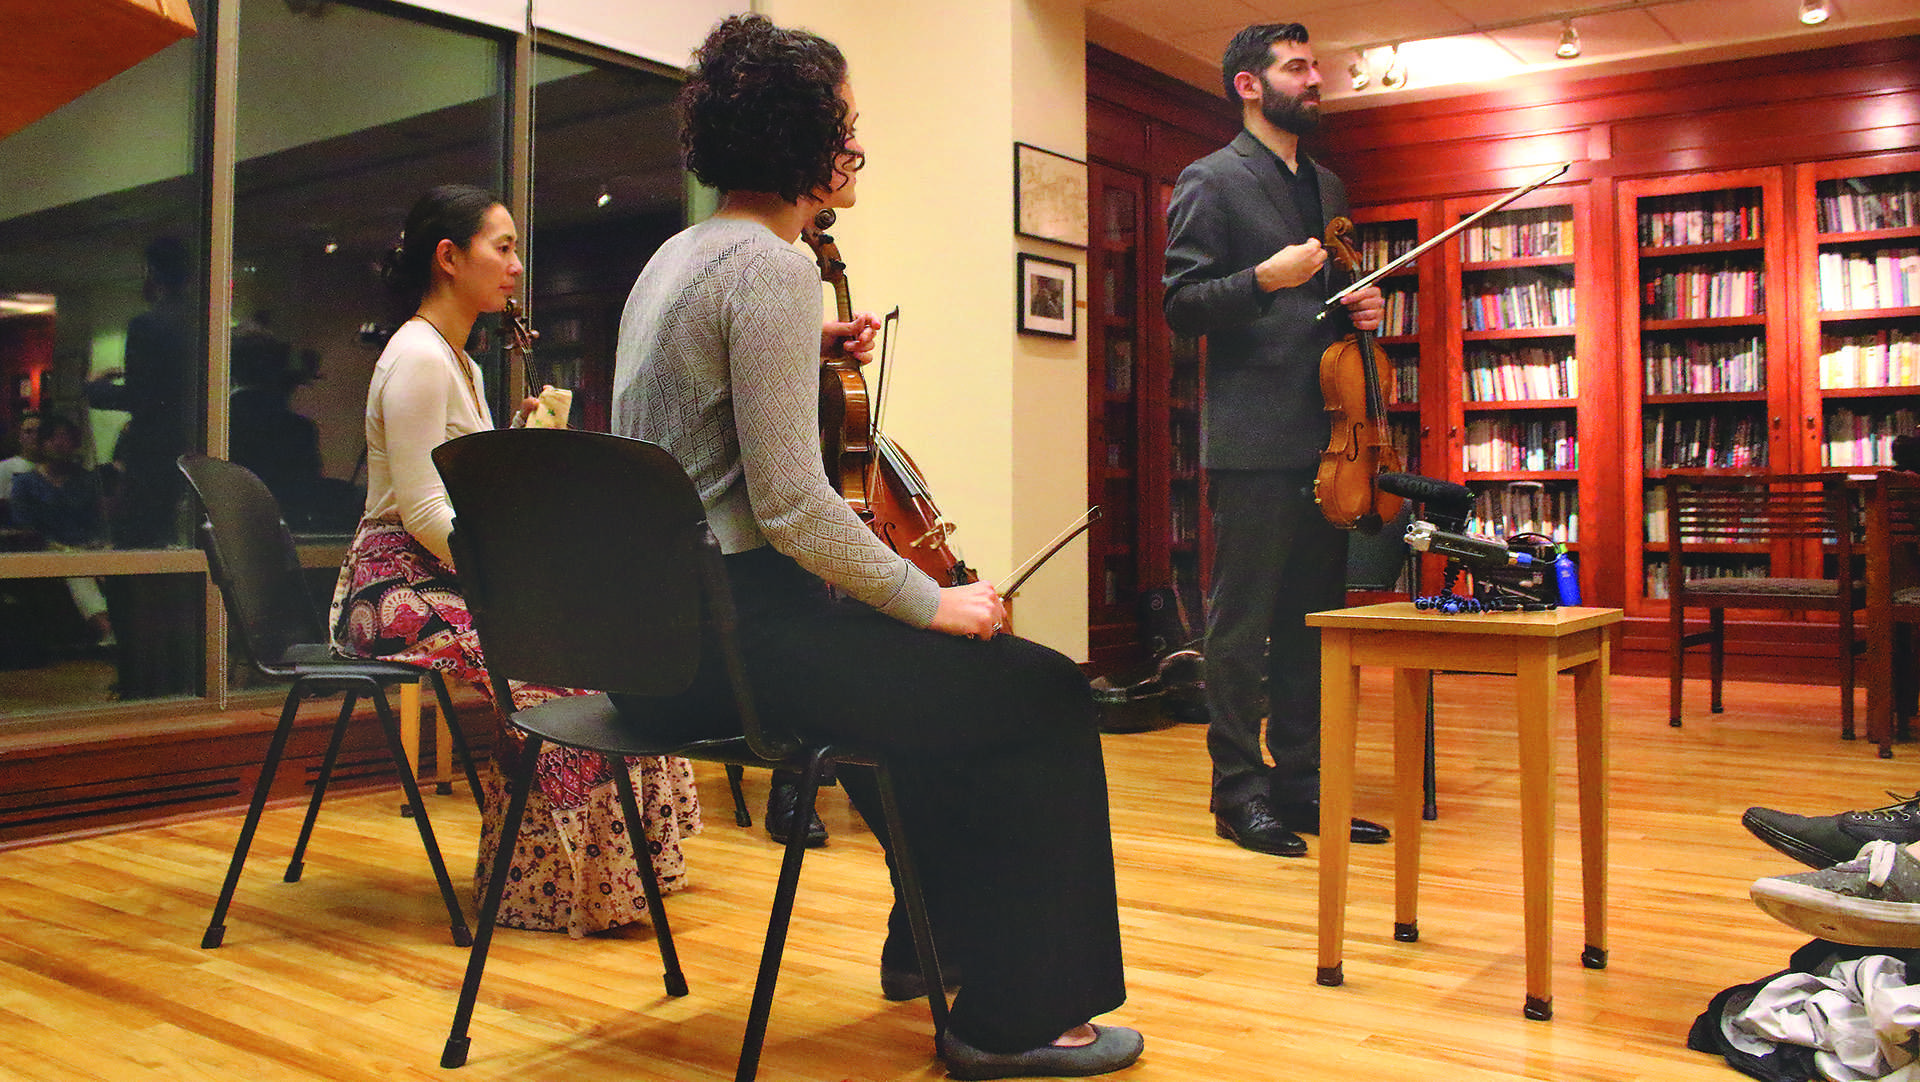 Jonah Sirota introduces the quartet in the Frank Conroy Reading Room of the Dey House on Thursday, Oct. 5, 2017. The Chiara Quartet teamed up with the Iowa Writing Program to create a performance about memory. (Ashley Morris/The Daily Iowan)